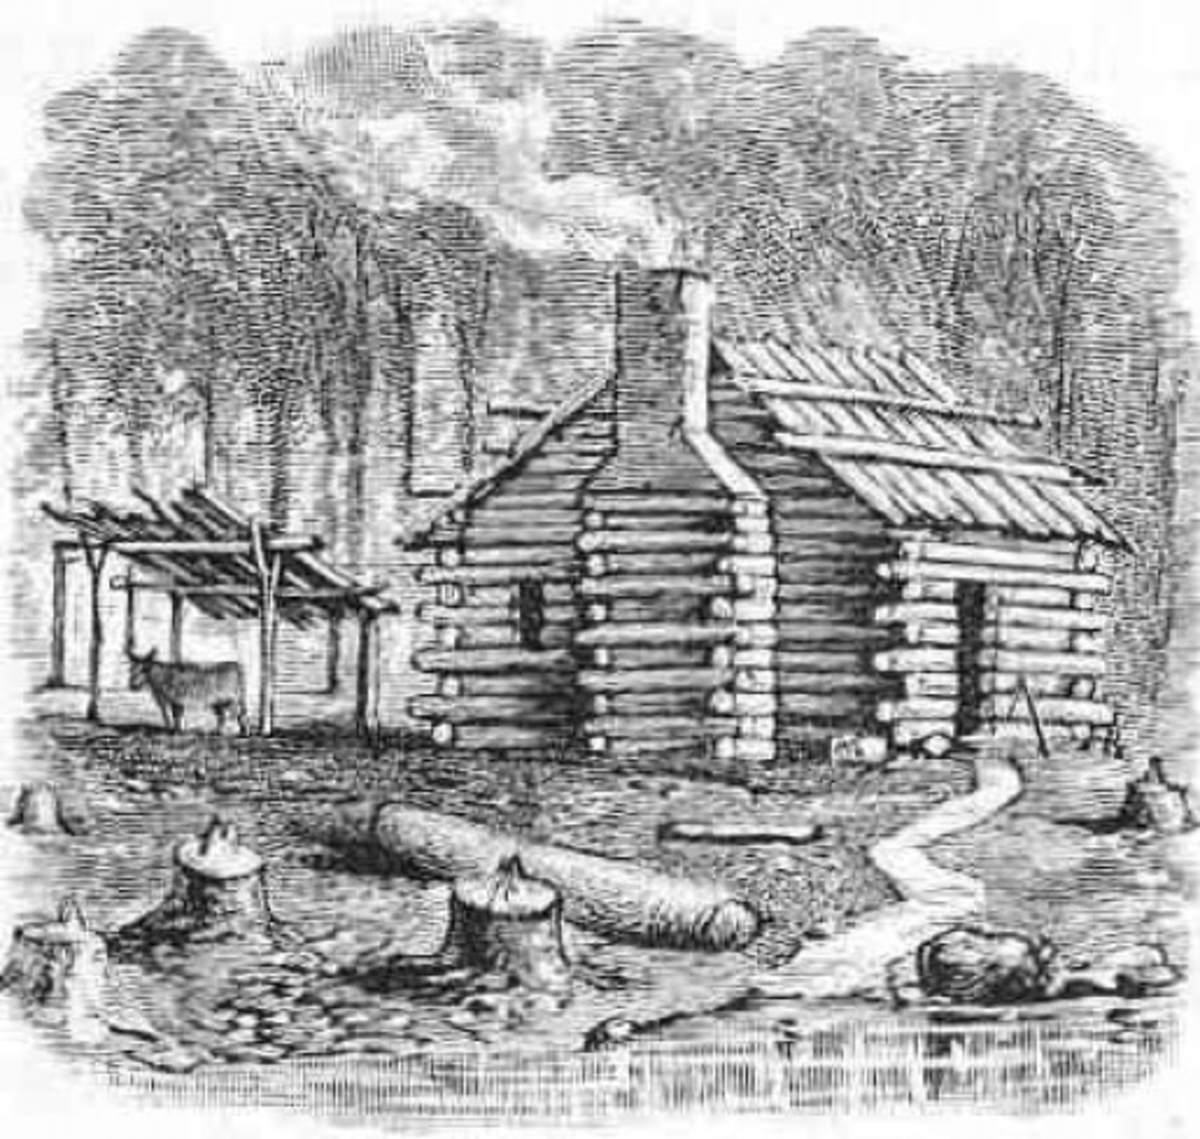 The home designs of the first American settlers built from rough-hewn logs felled in their localities.